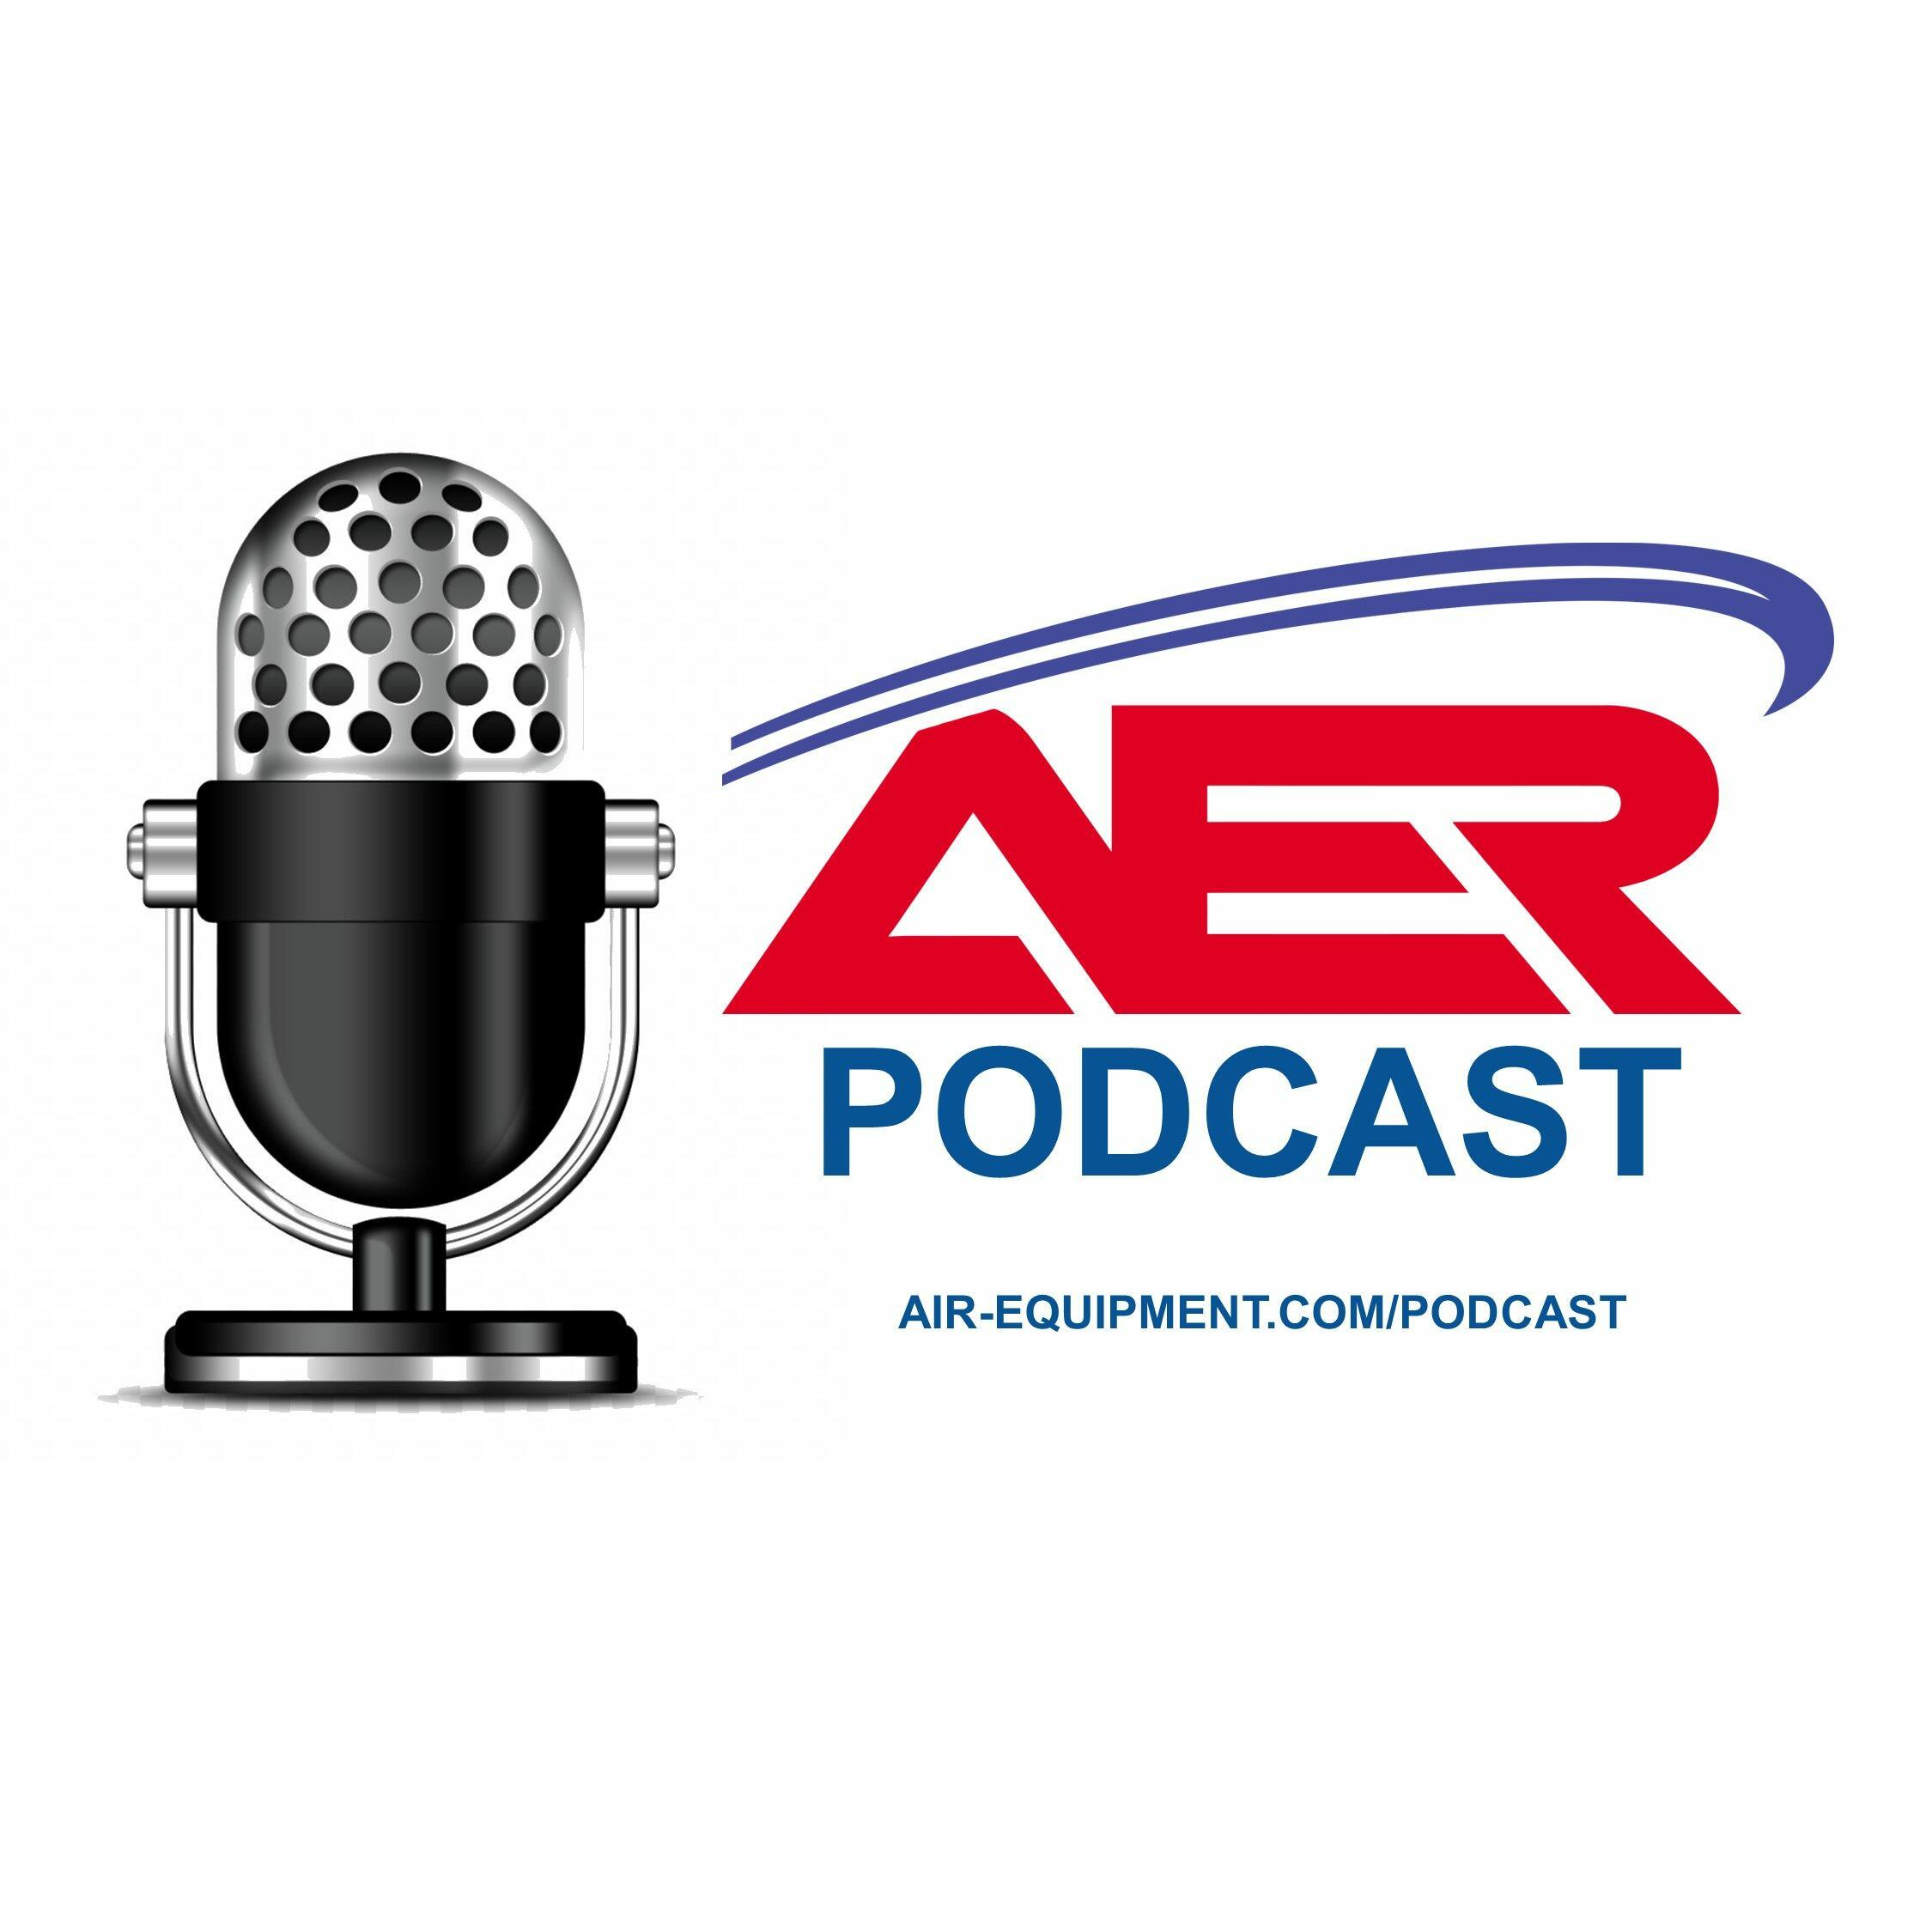 AER Podcast